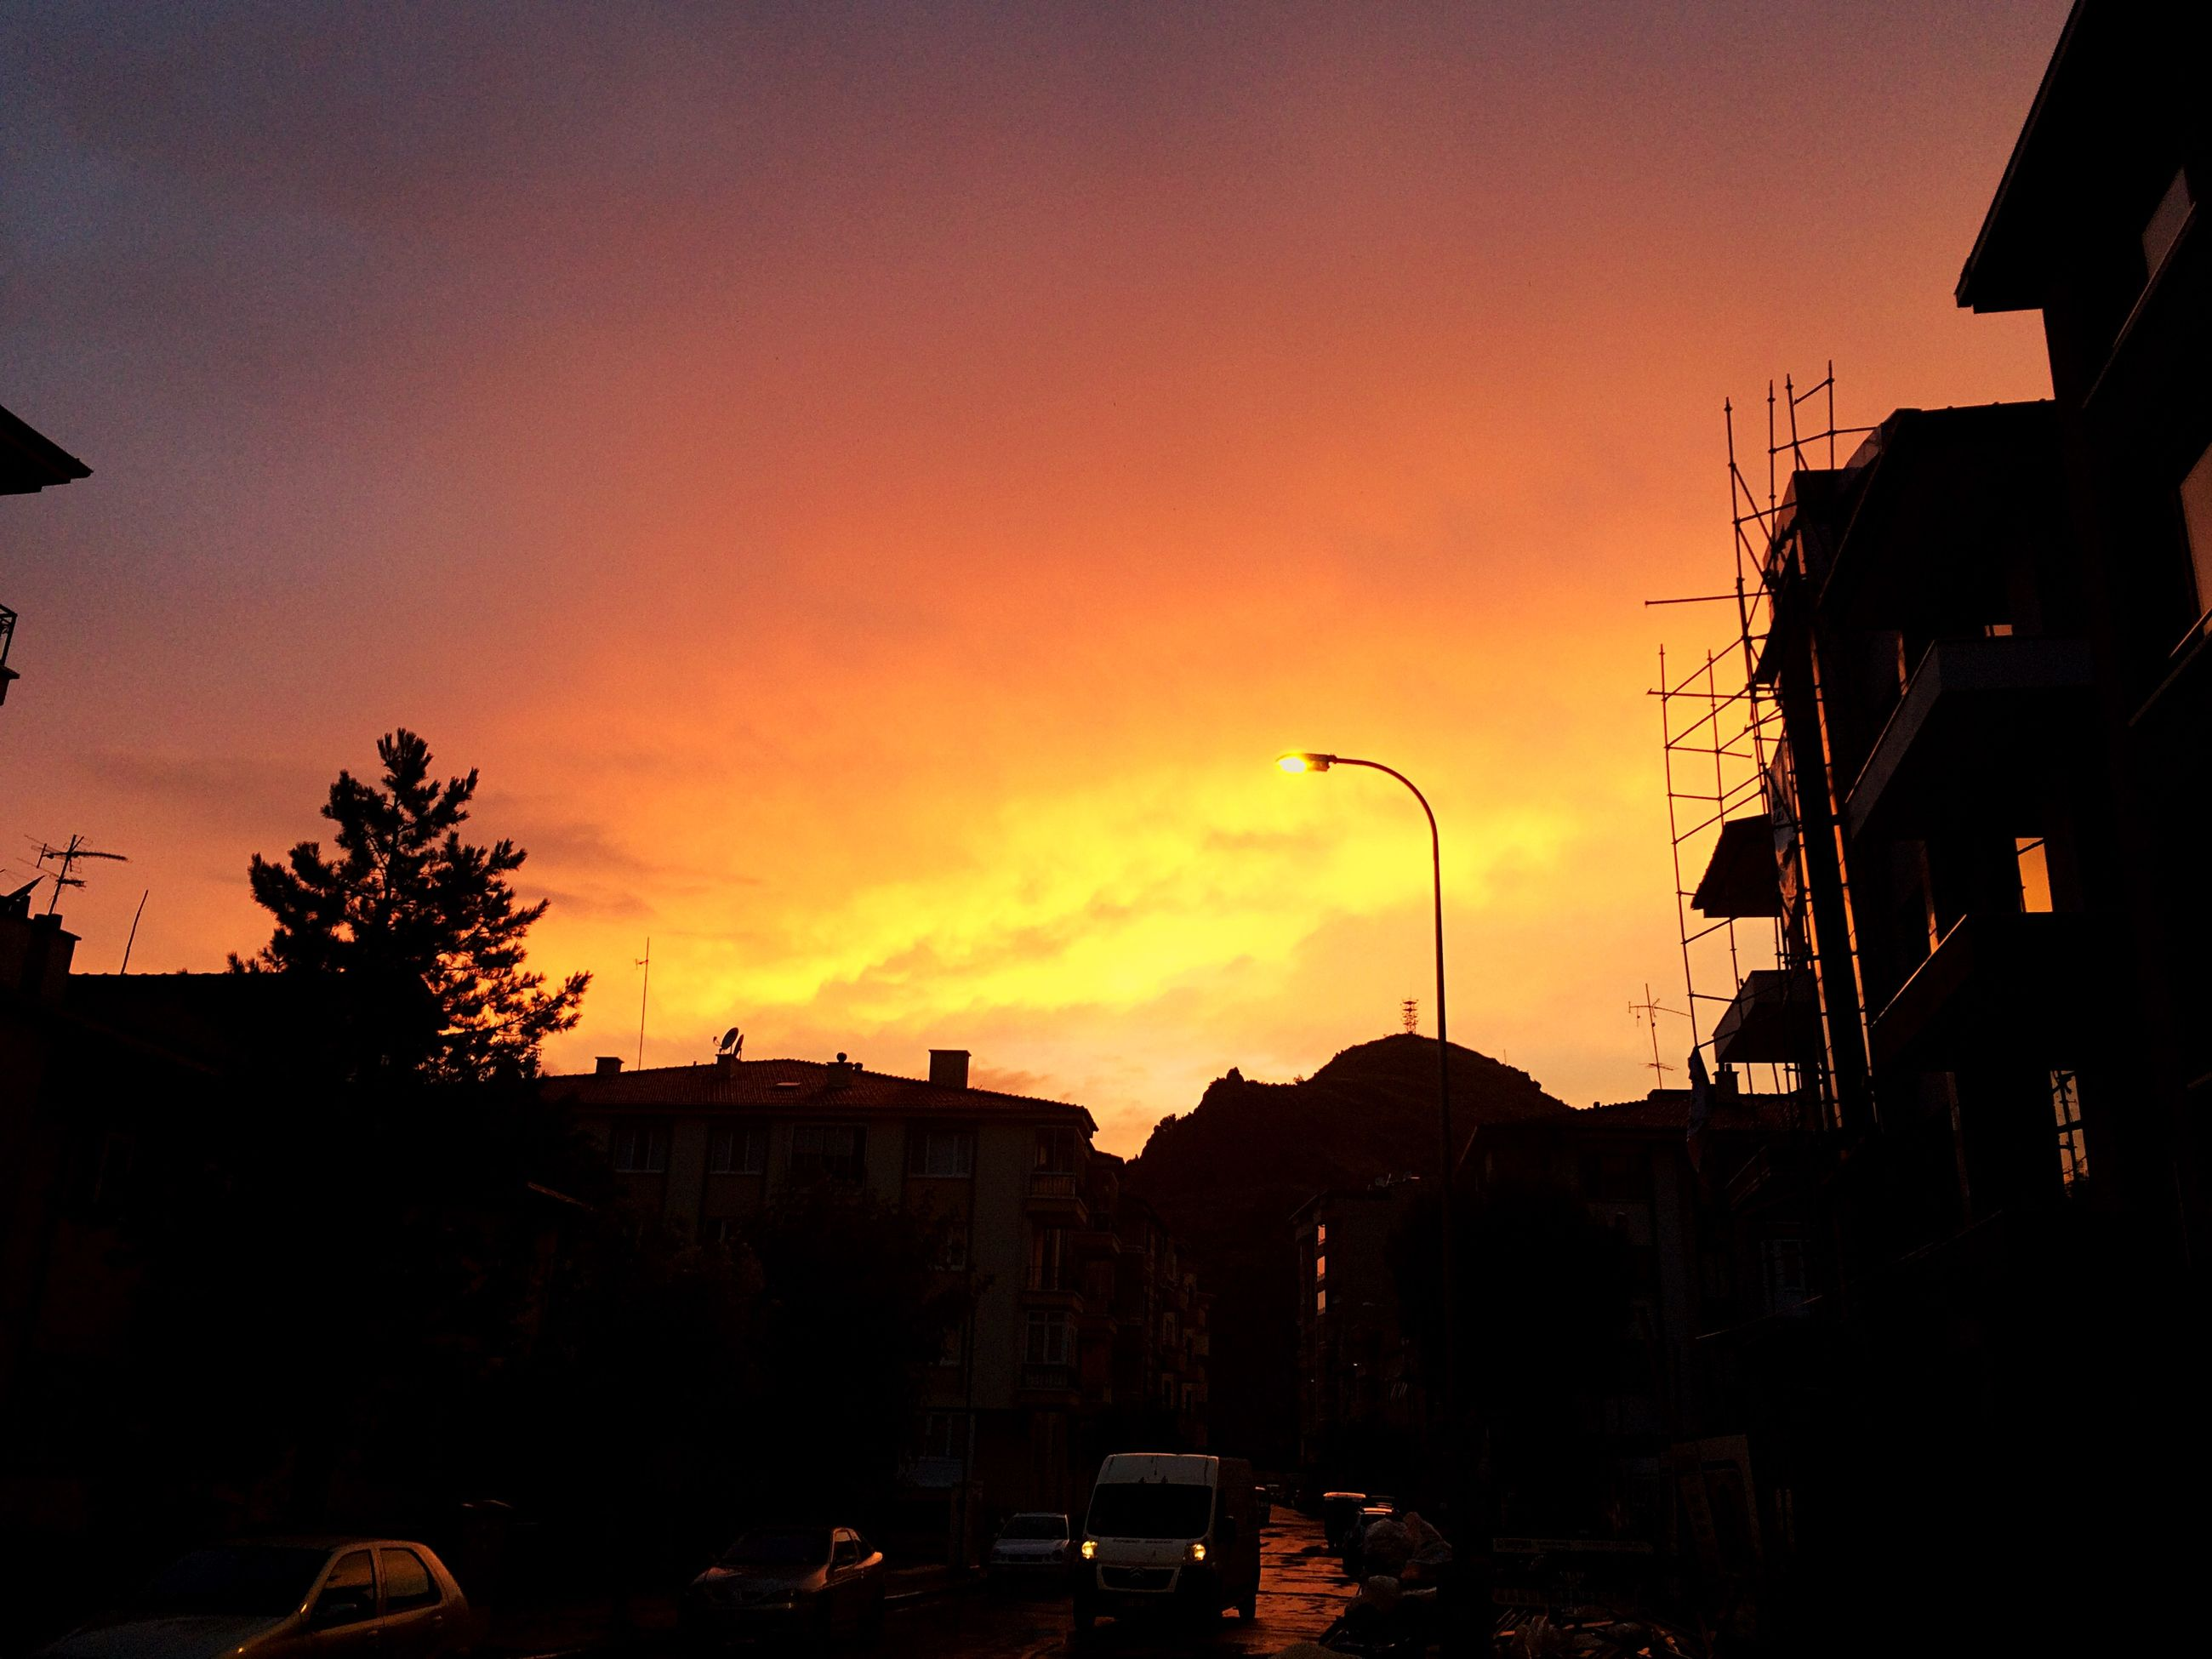 sunset, building exterior, architecture, built structure, silhouette, car, sky, city, land vehicle, orange color, transportation, street light, street, tree, residential structure, dusk, house, mode of transport, residential building, building